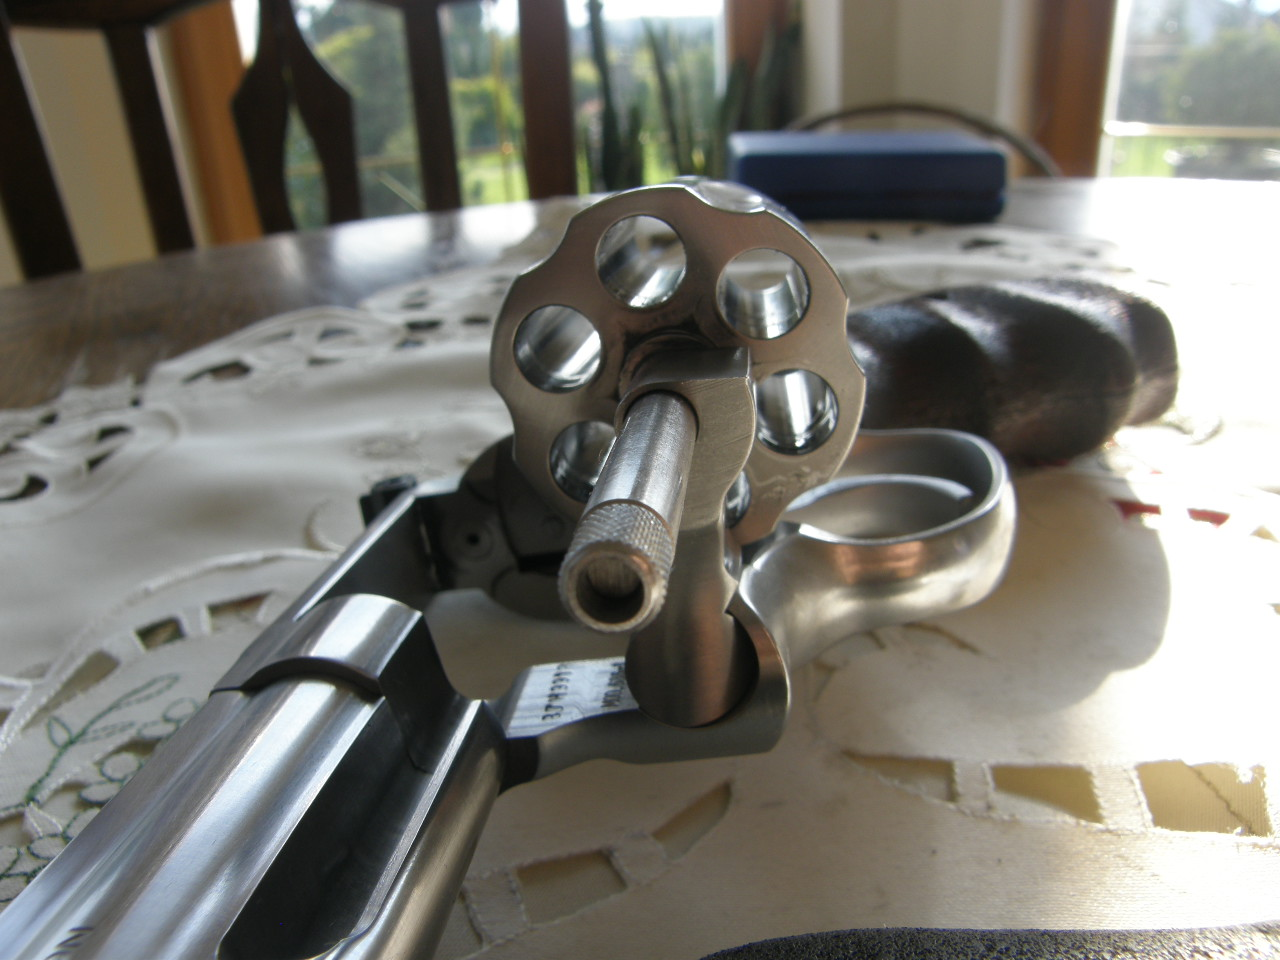 Revolver Smith Wesson Mod.686 v.č. BJH 9918 r. 357 Mag,